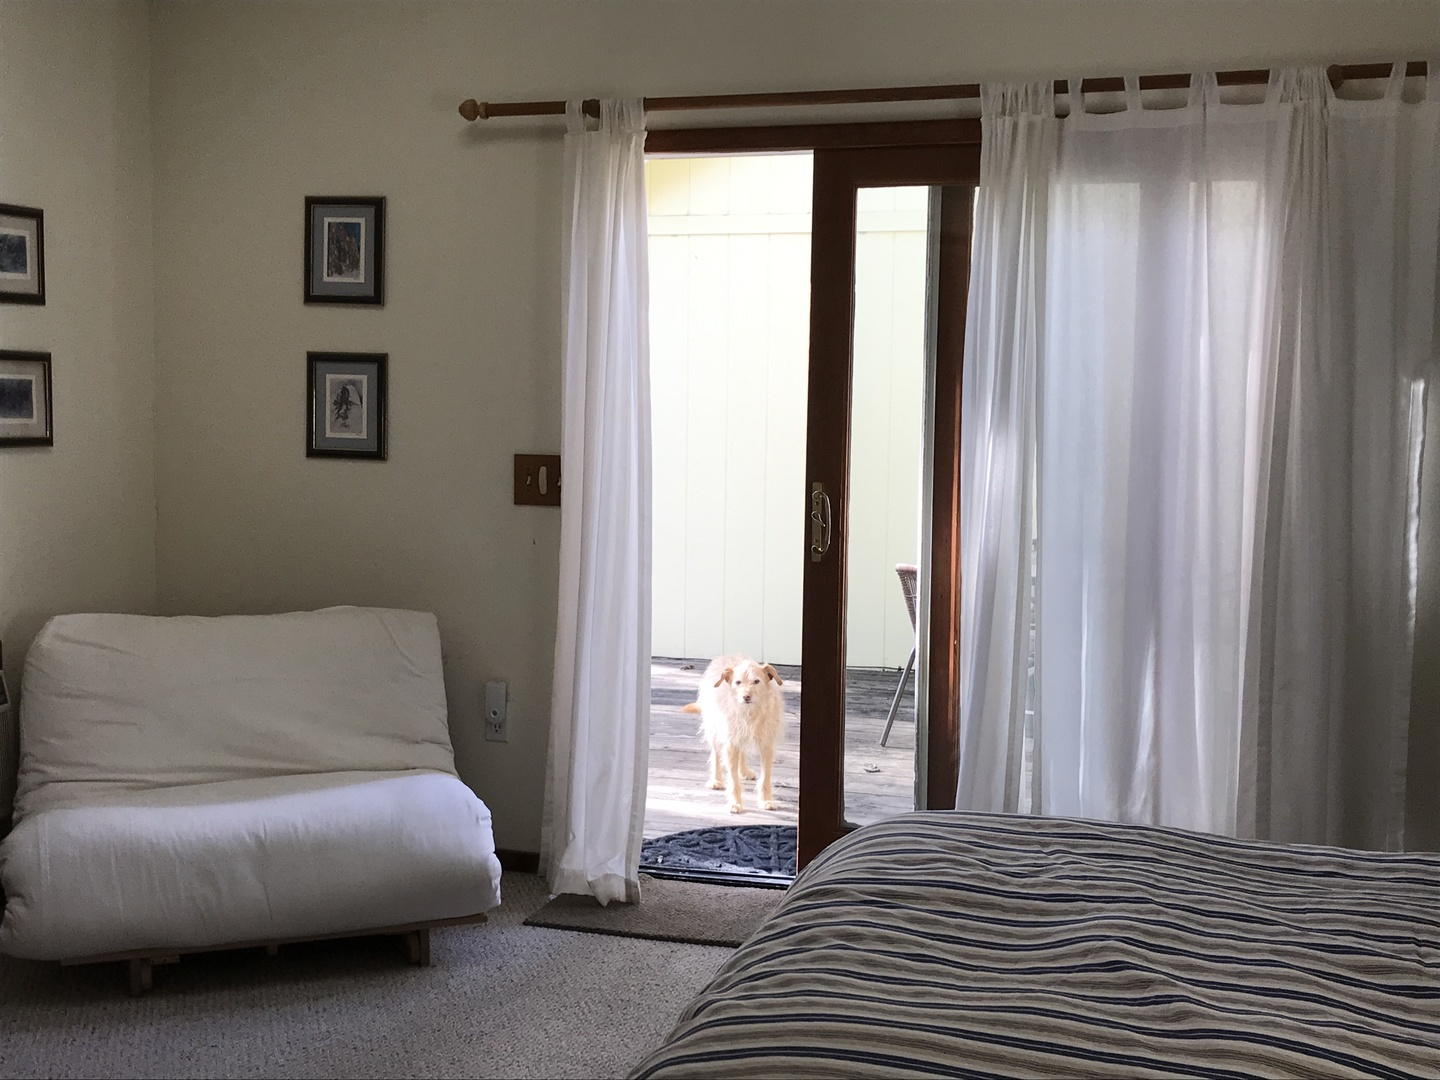 A bedroom with a large bed in a room at Backyard Garden Oasis B&B.